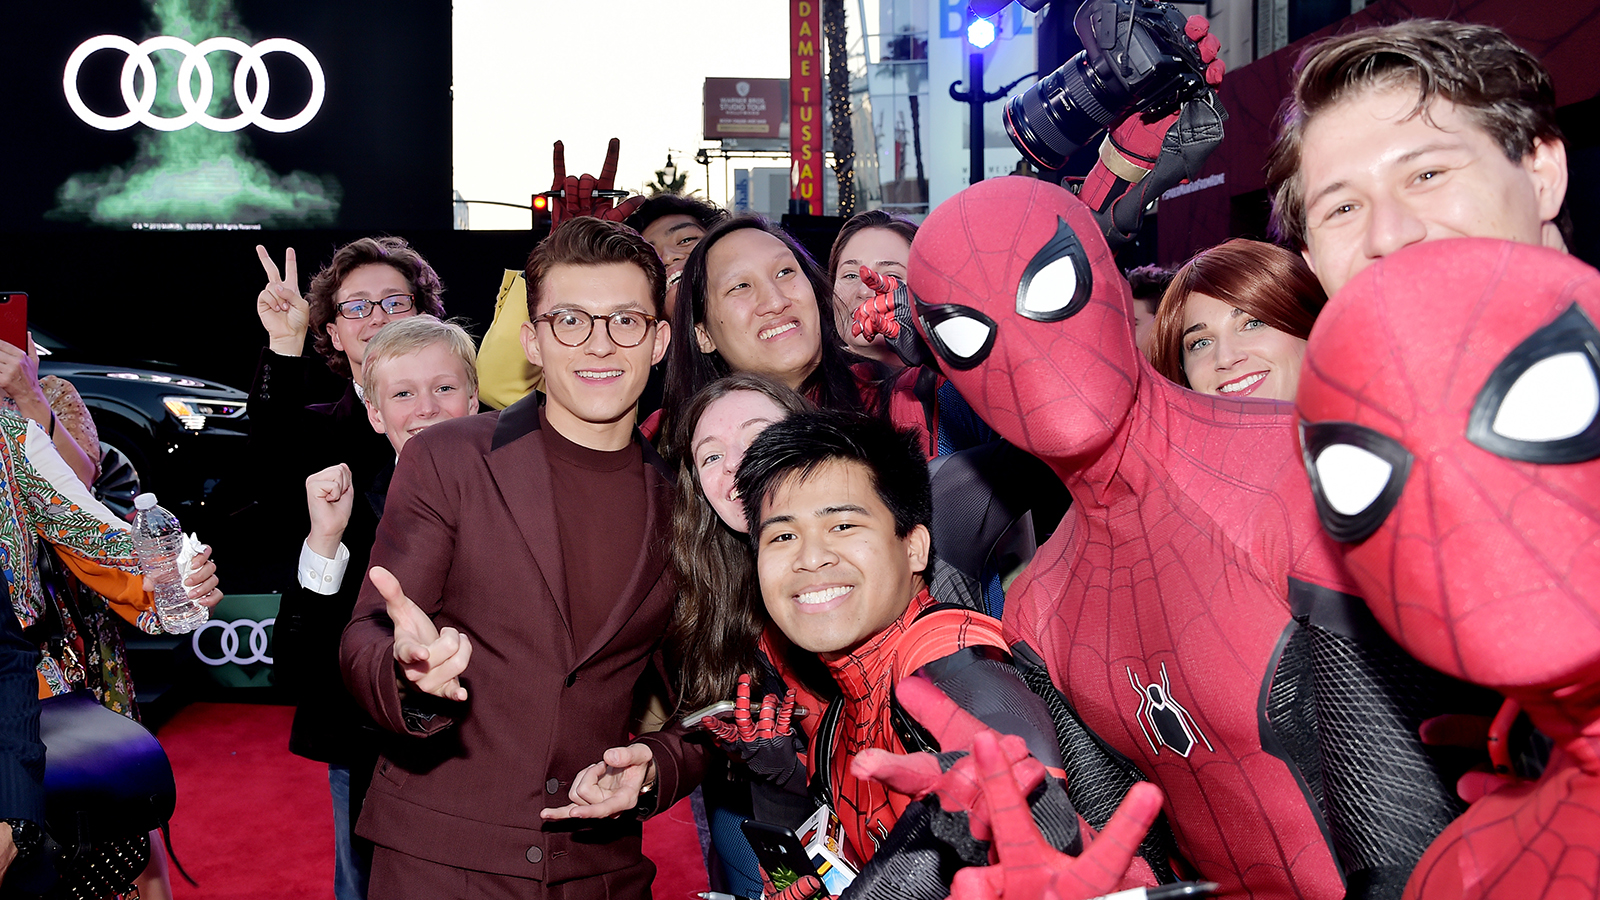 LOS ANGELES, CALIFORNIA - JUNE 26: Tom Holland attends the World Premiere of 'Spider-Man: Far From Home' hosted by Audi at the TCL Chinese Theatre on June 26, 2019 in Hollywood, California. (Photo by Stefanie Keenan/Getty Images for Audi)